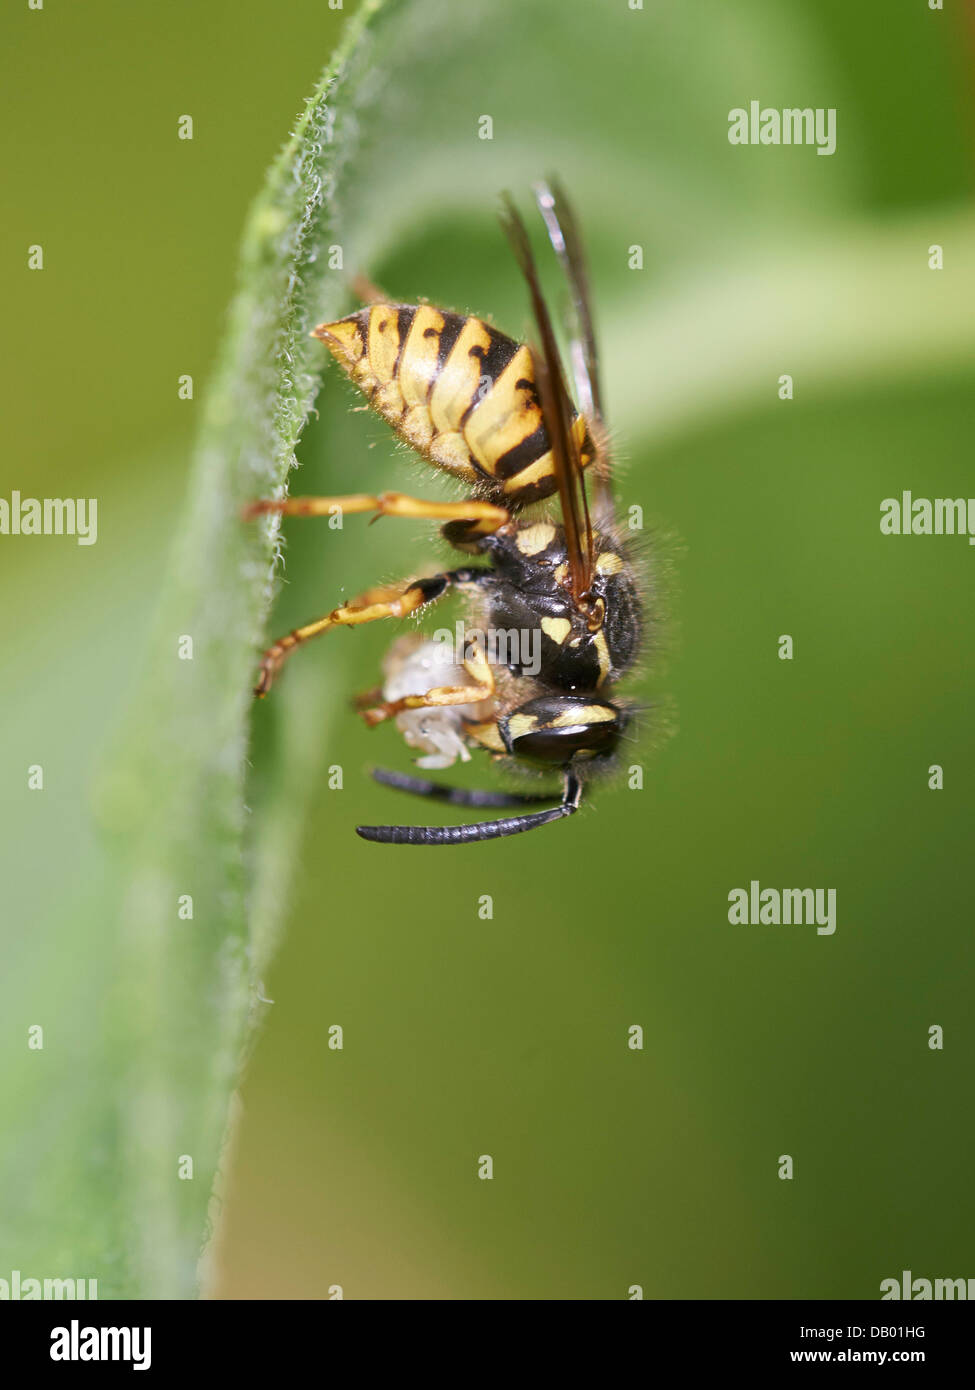 Common Wasp with prey - Stock Image